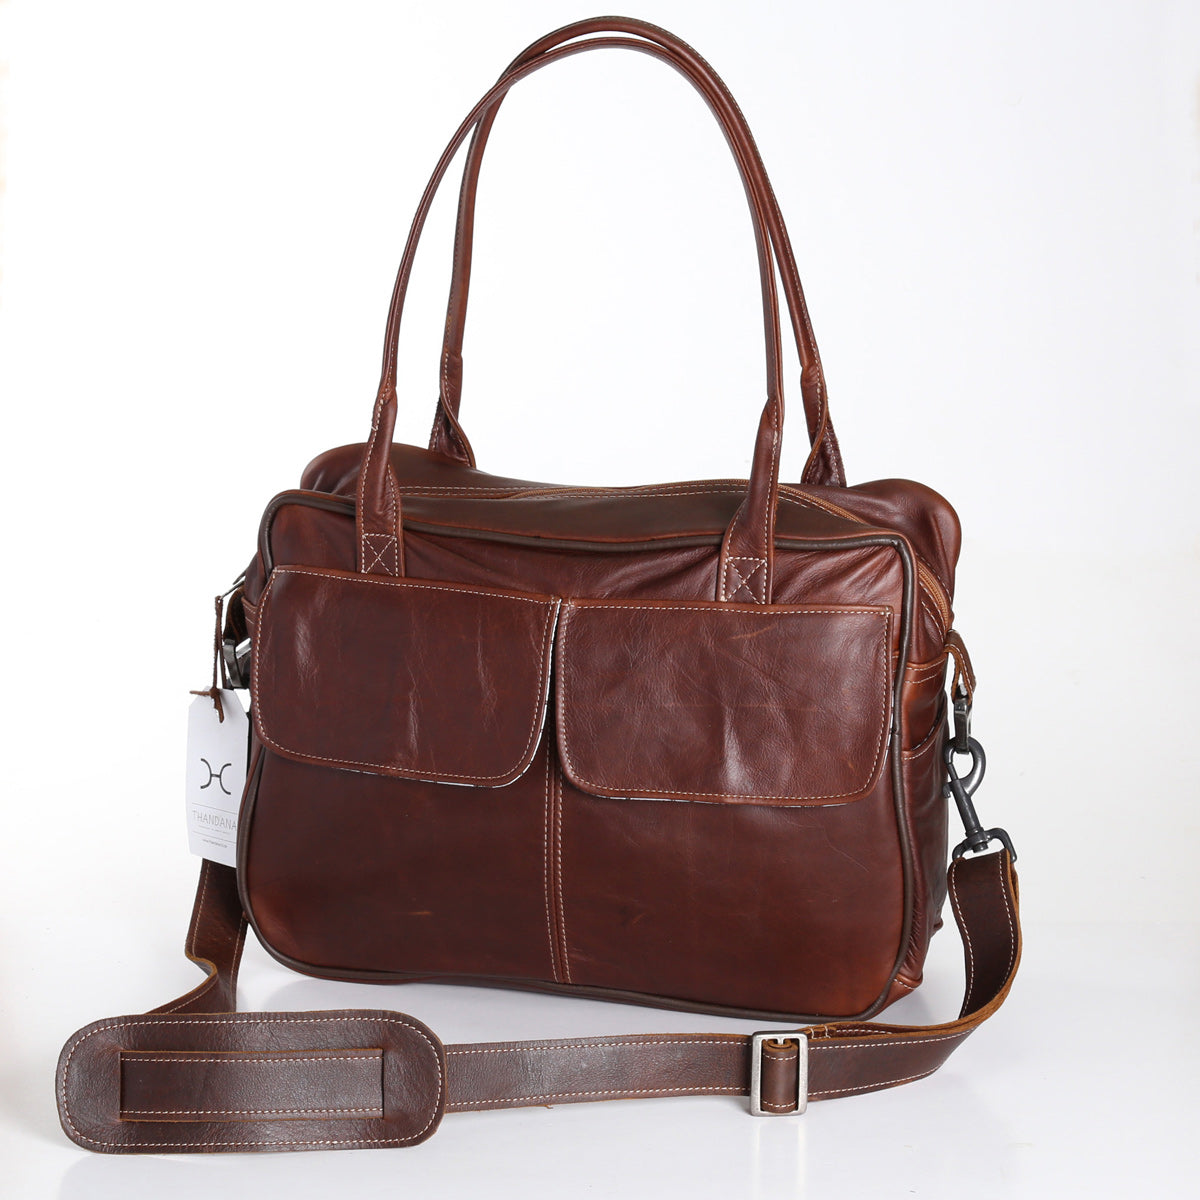 Thandana Briefcase - Brown - Zufrique Boutique